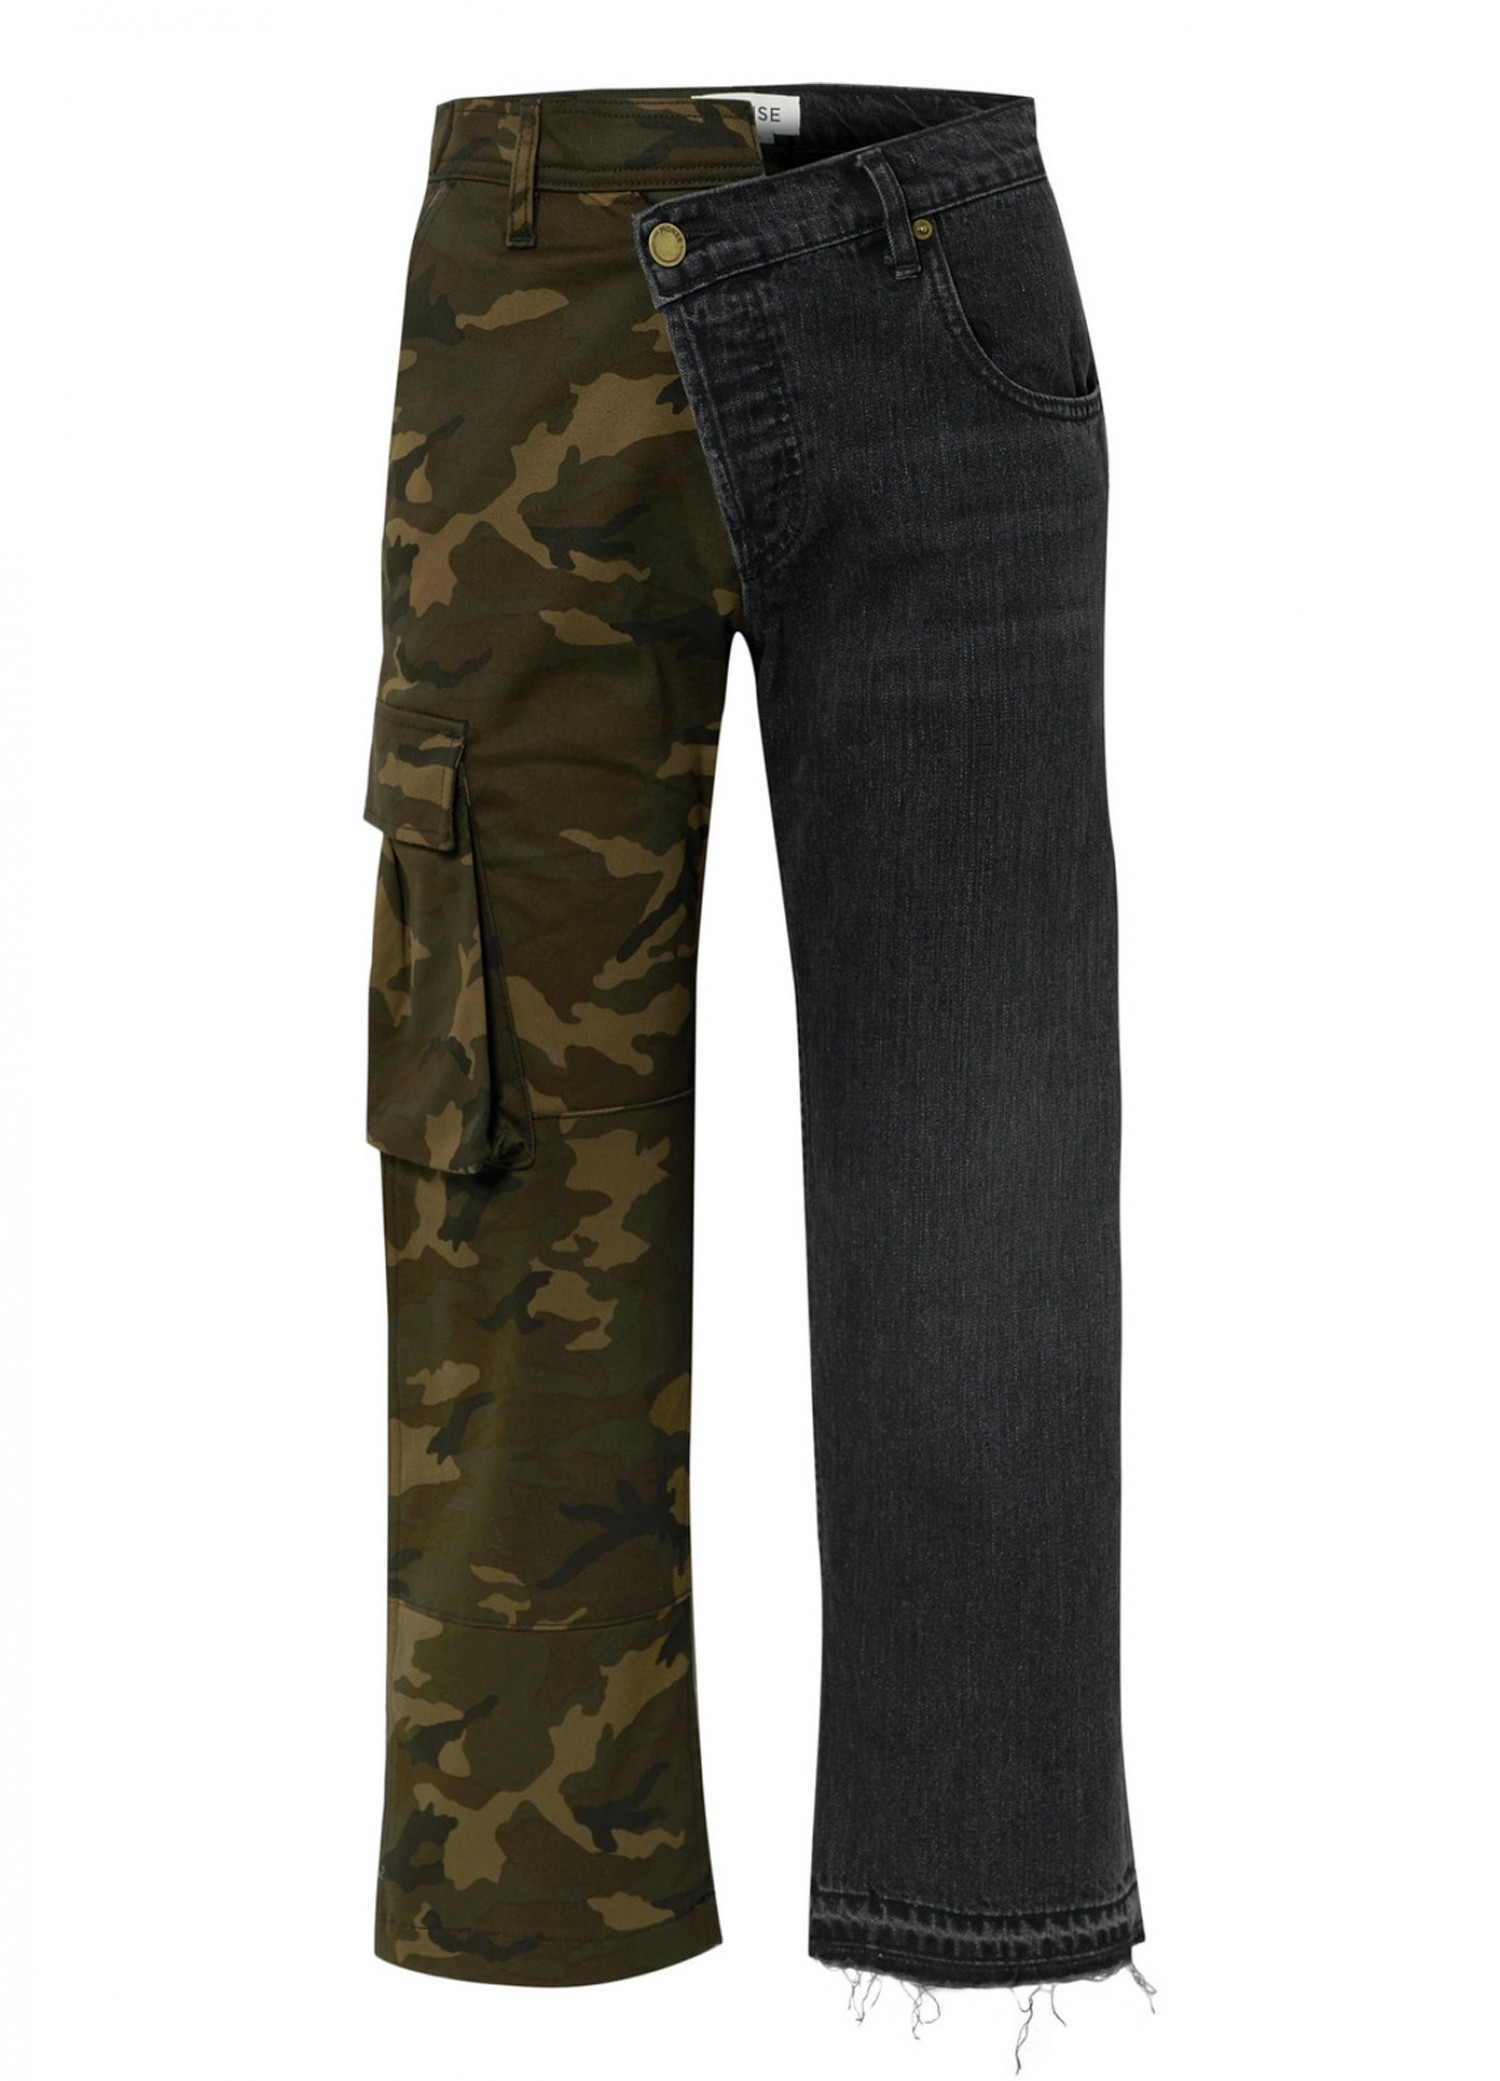 Split-Leg Camo Cargo and Dark Denim Straight-Leg Pants Front